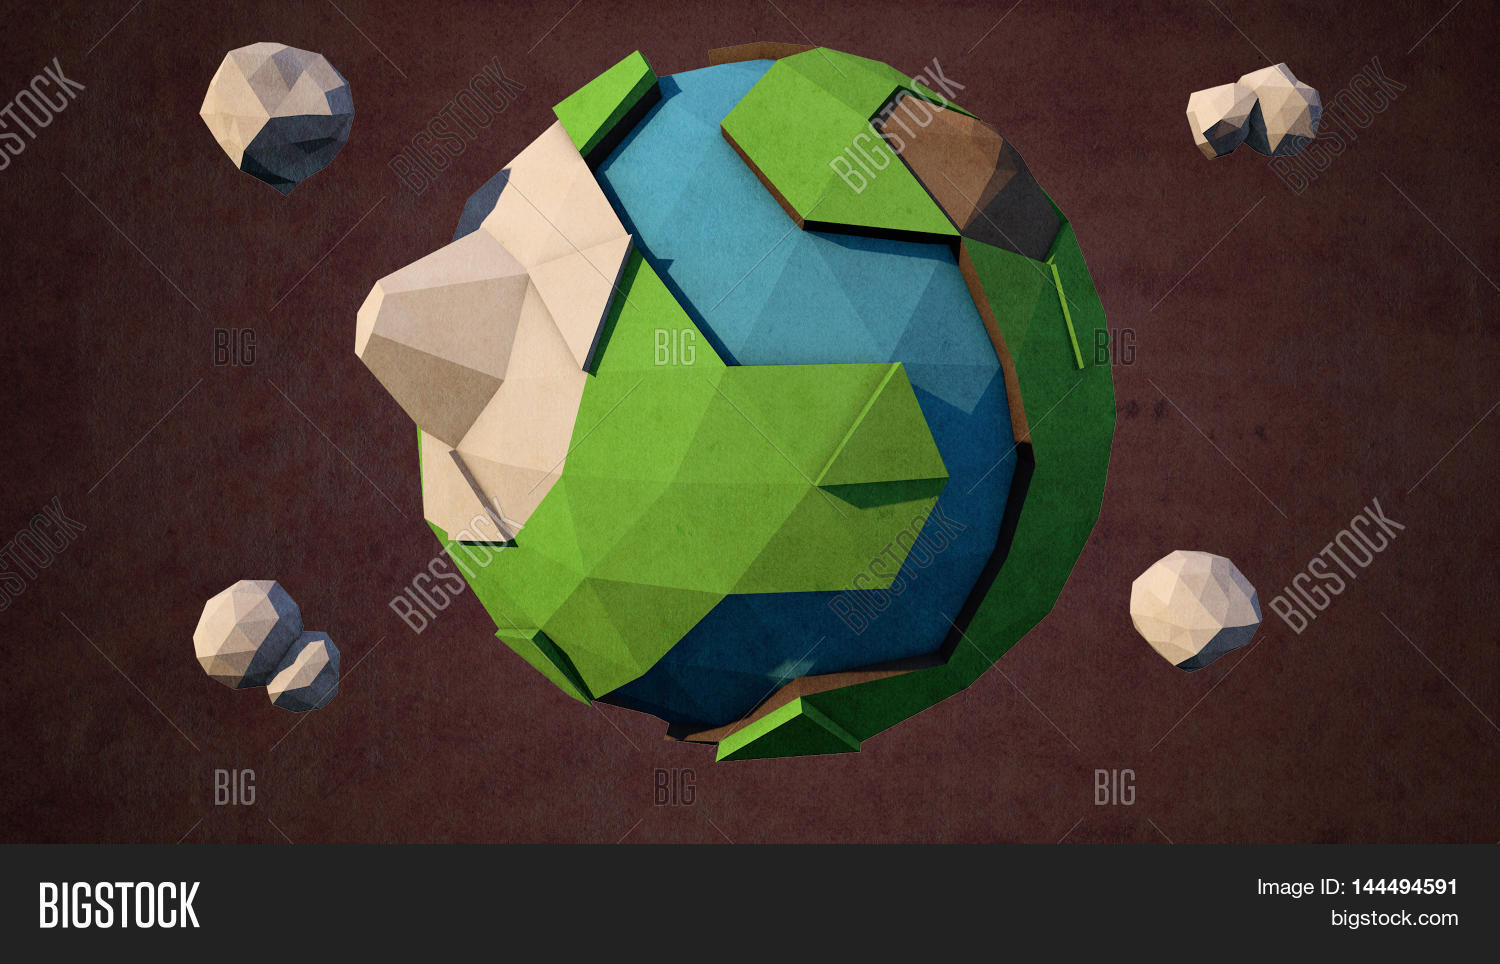 3d Model Earth Cinema Image & Photo (Free Trial) | Bigstock